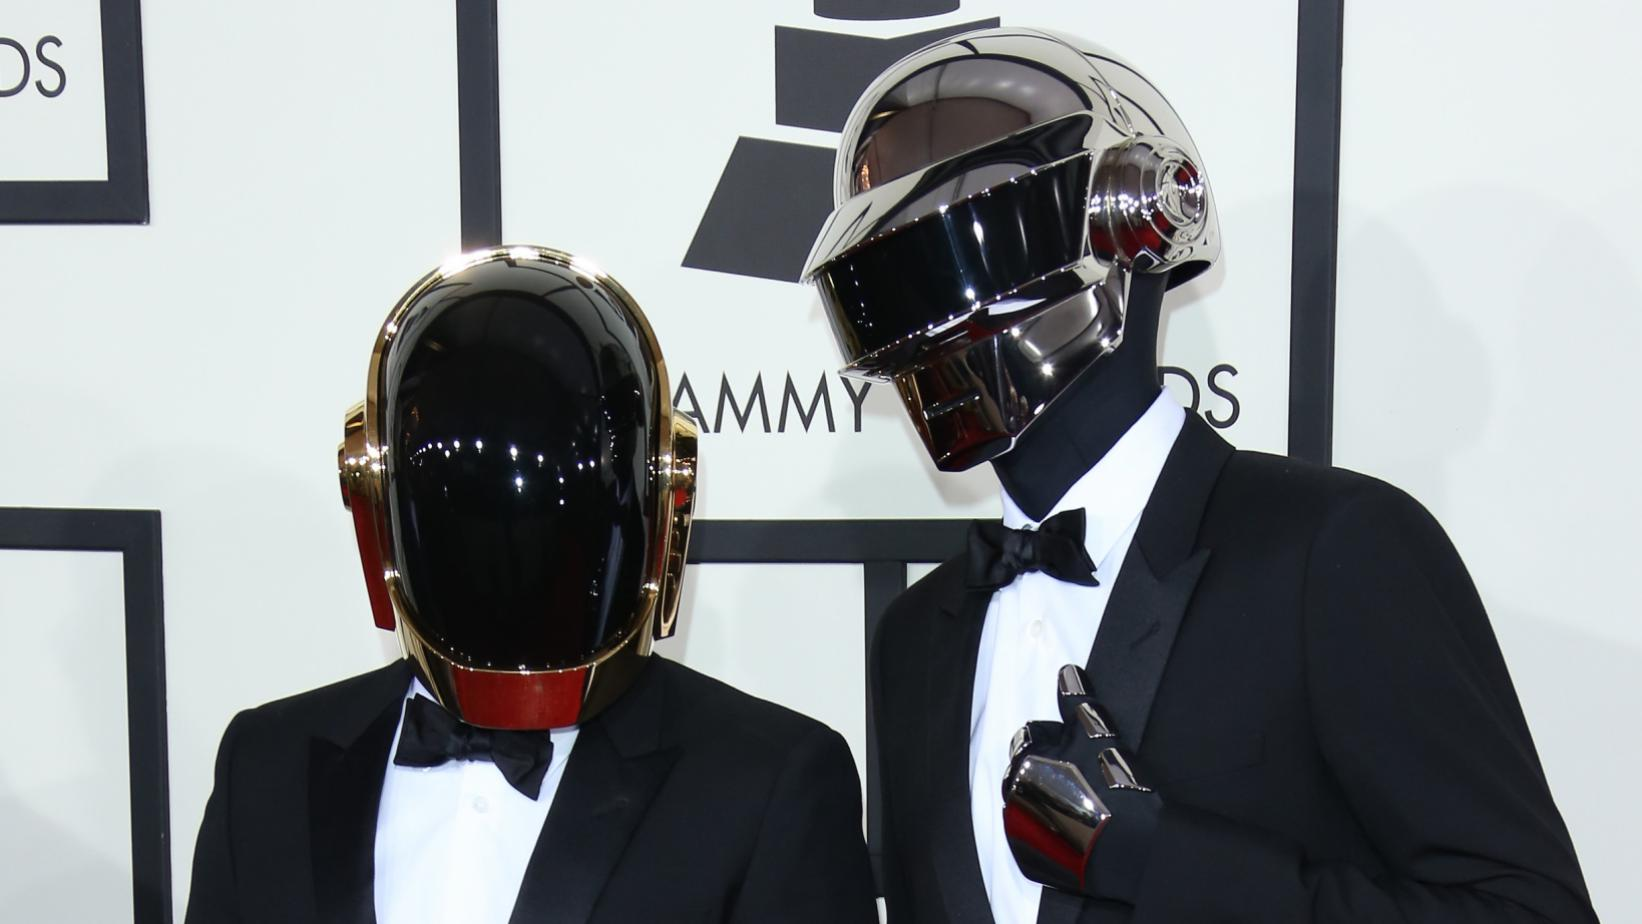 Daft Punk at the 56th GRAMMY Awards in 2014